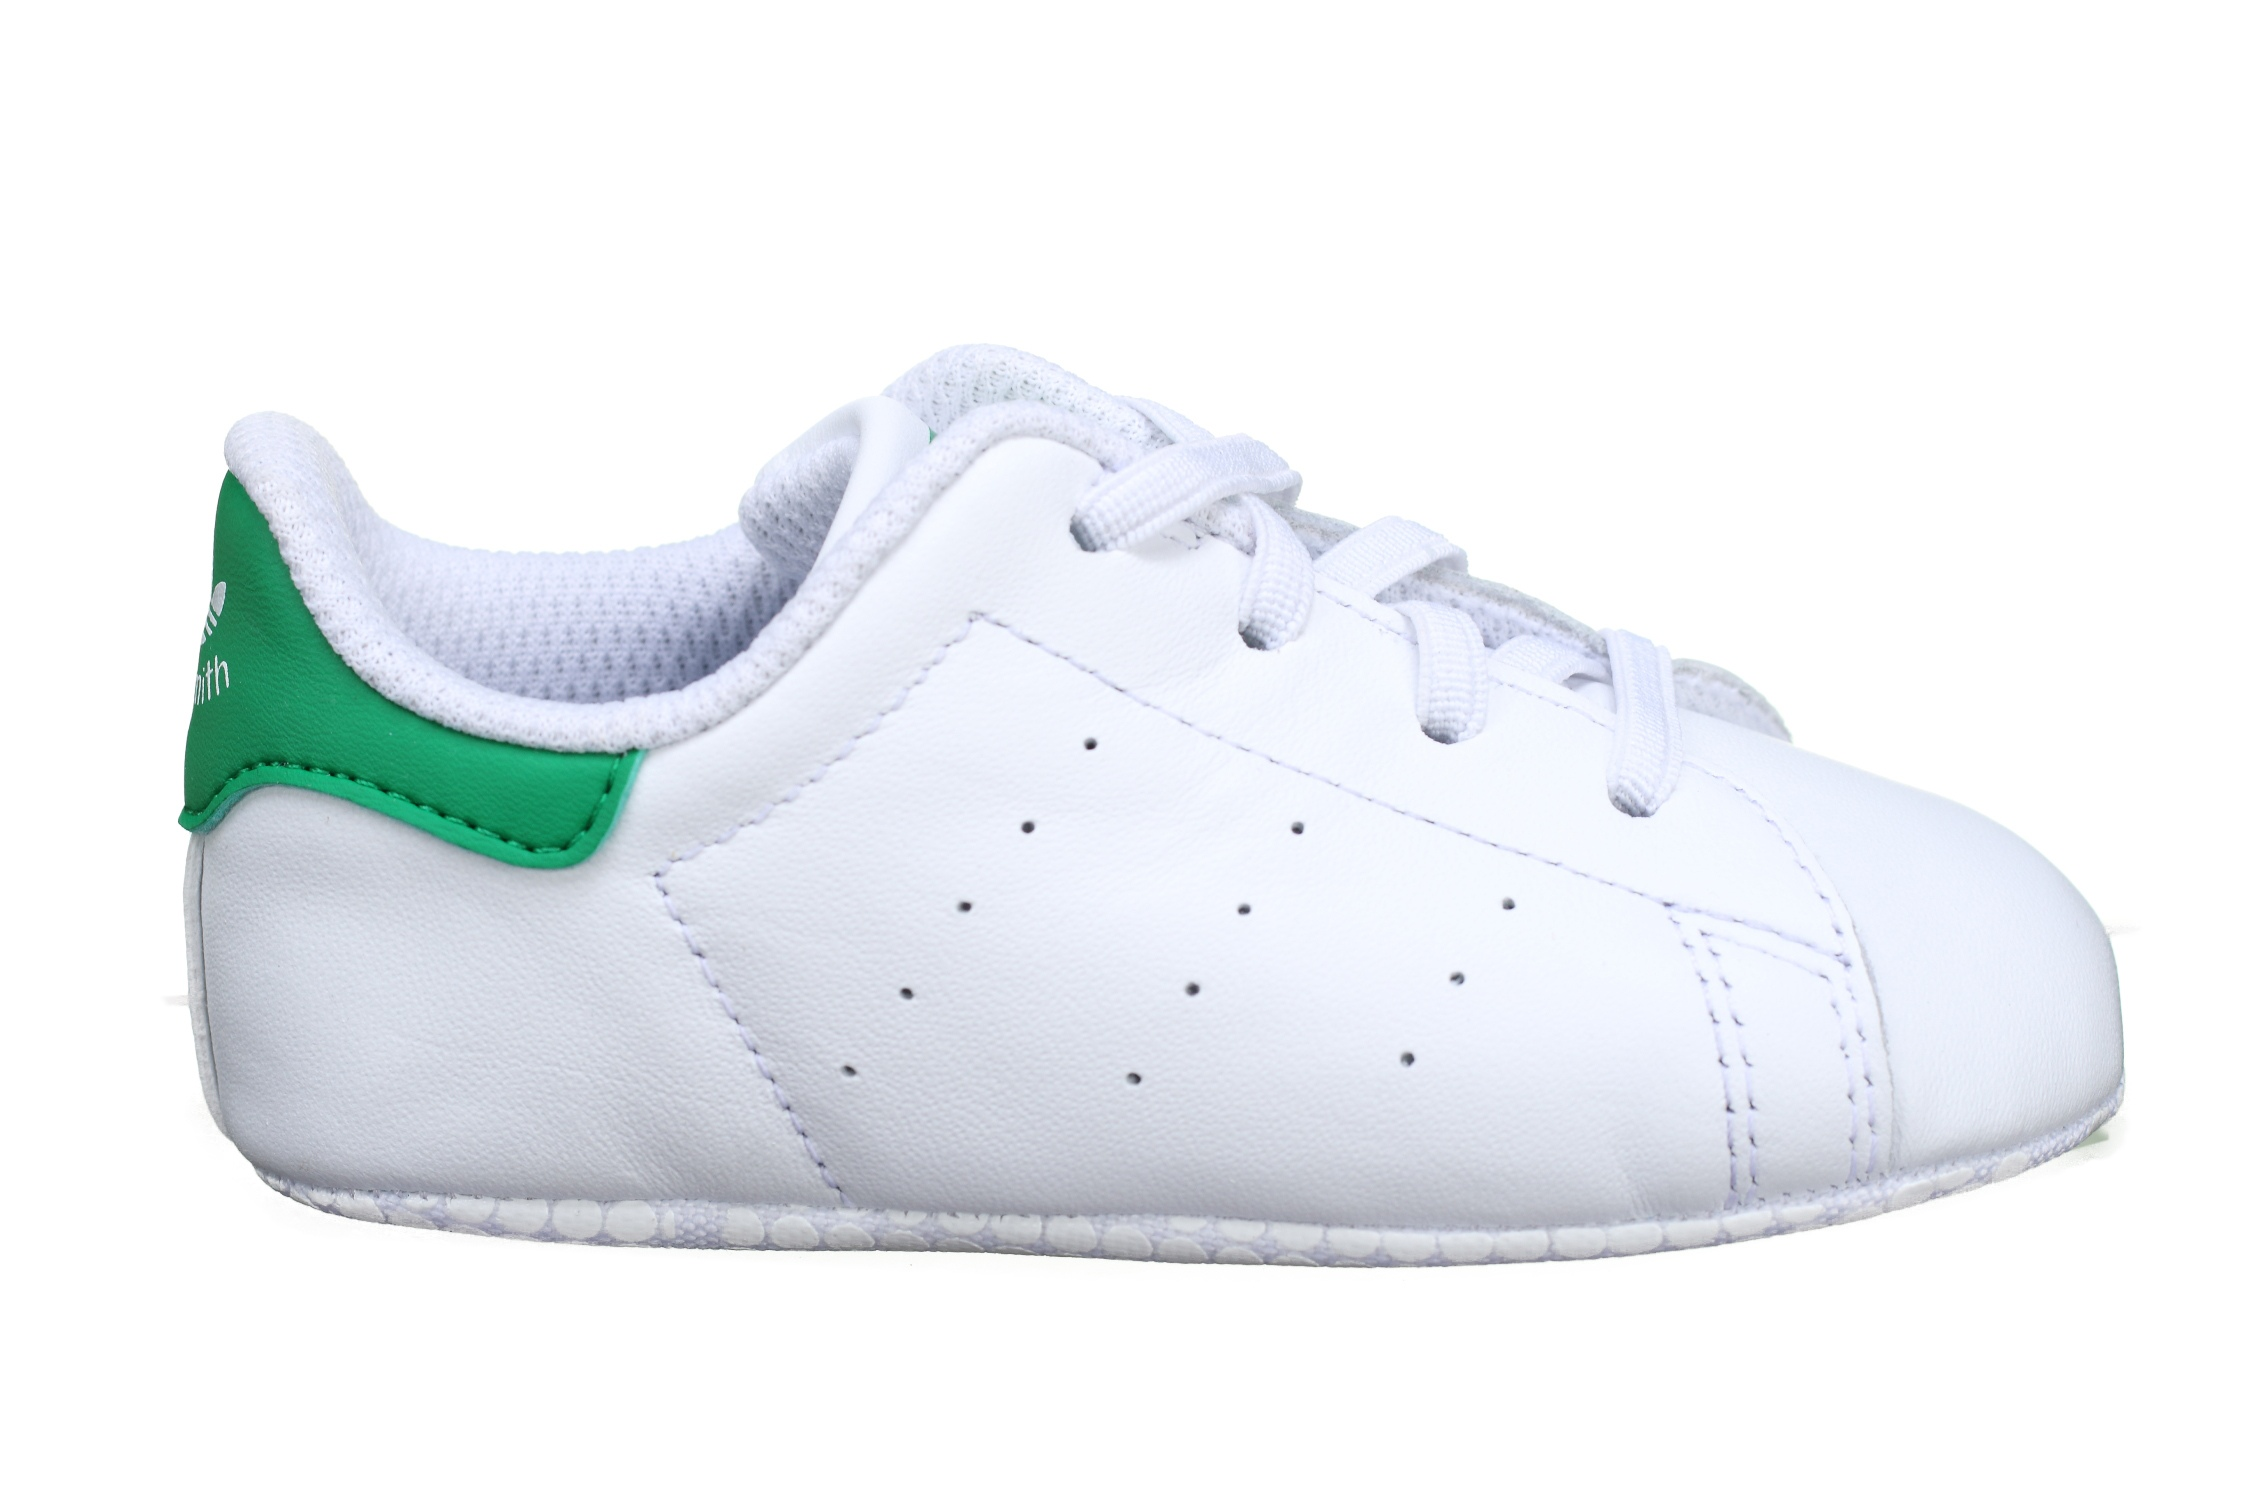 http://www.leadermode.com/170035/adidas-stan-smith-crib-b24101-blanc-vert.jpg